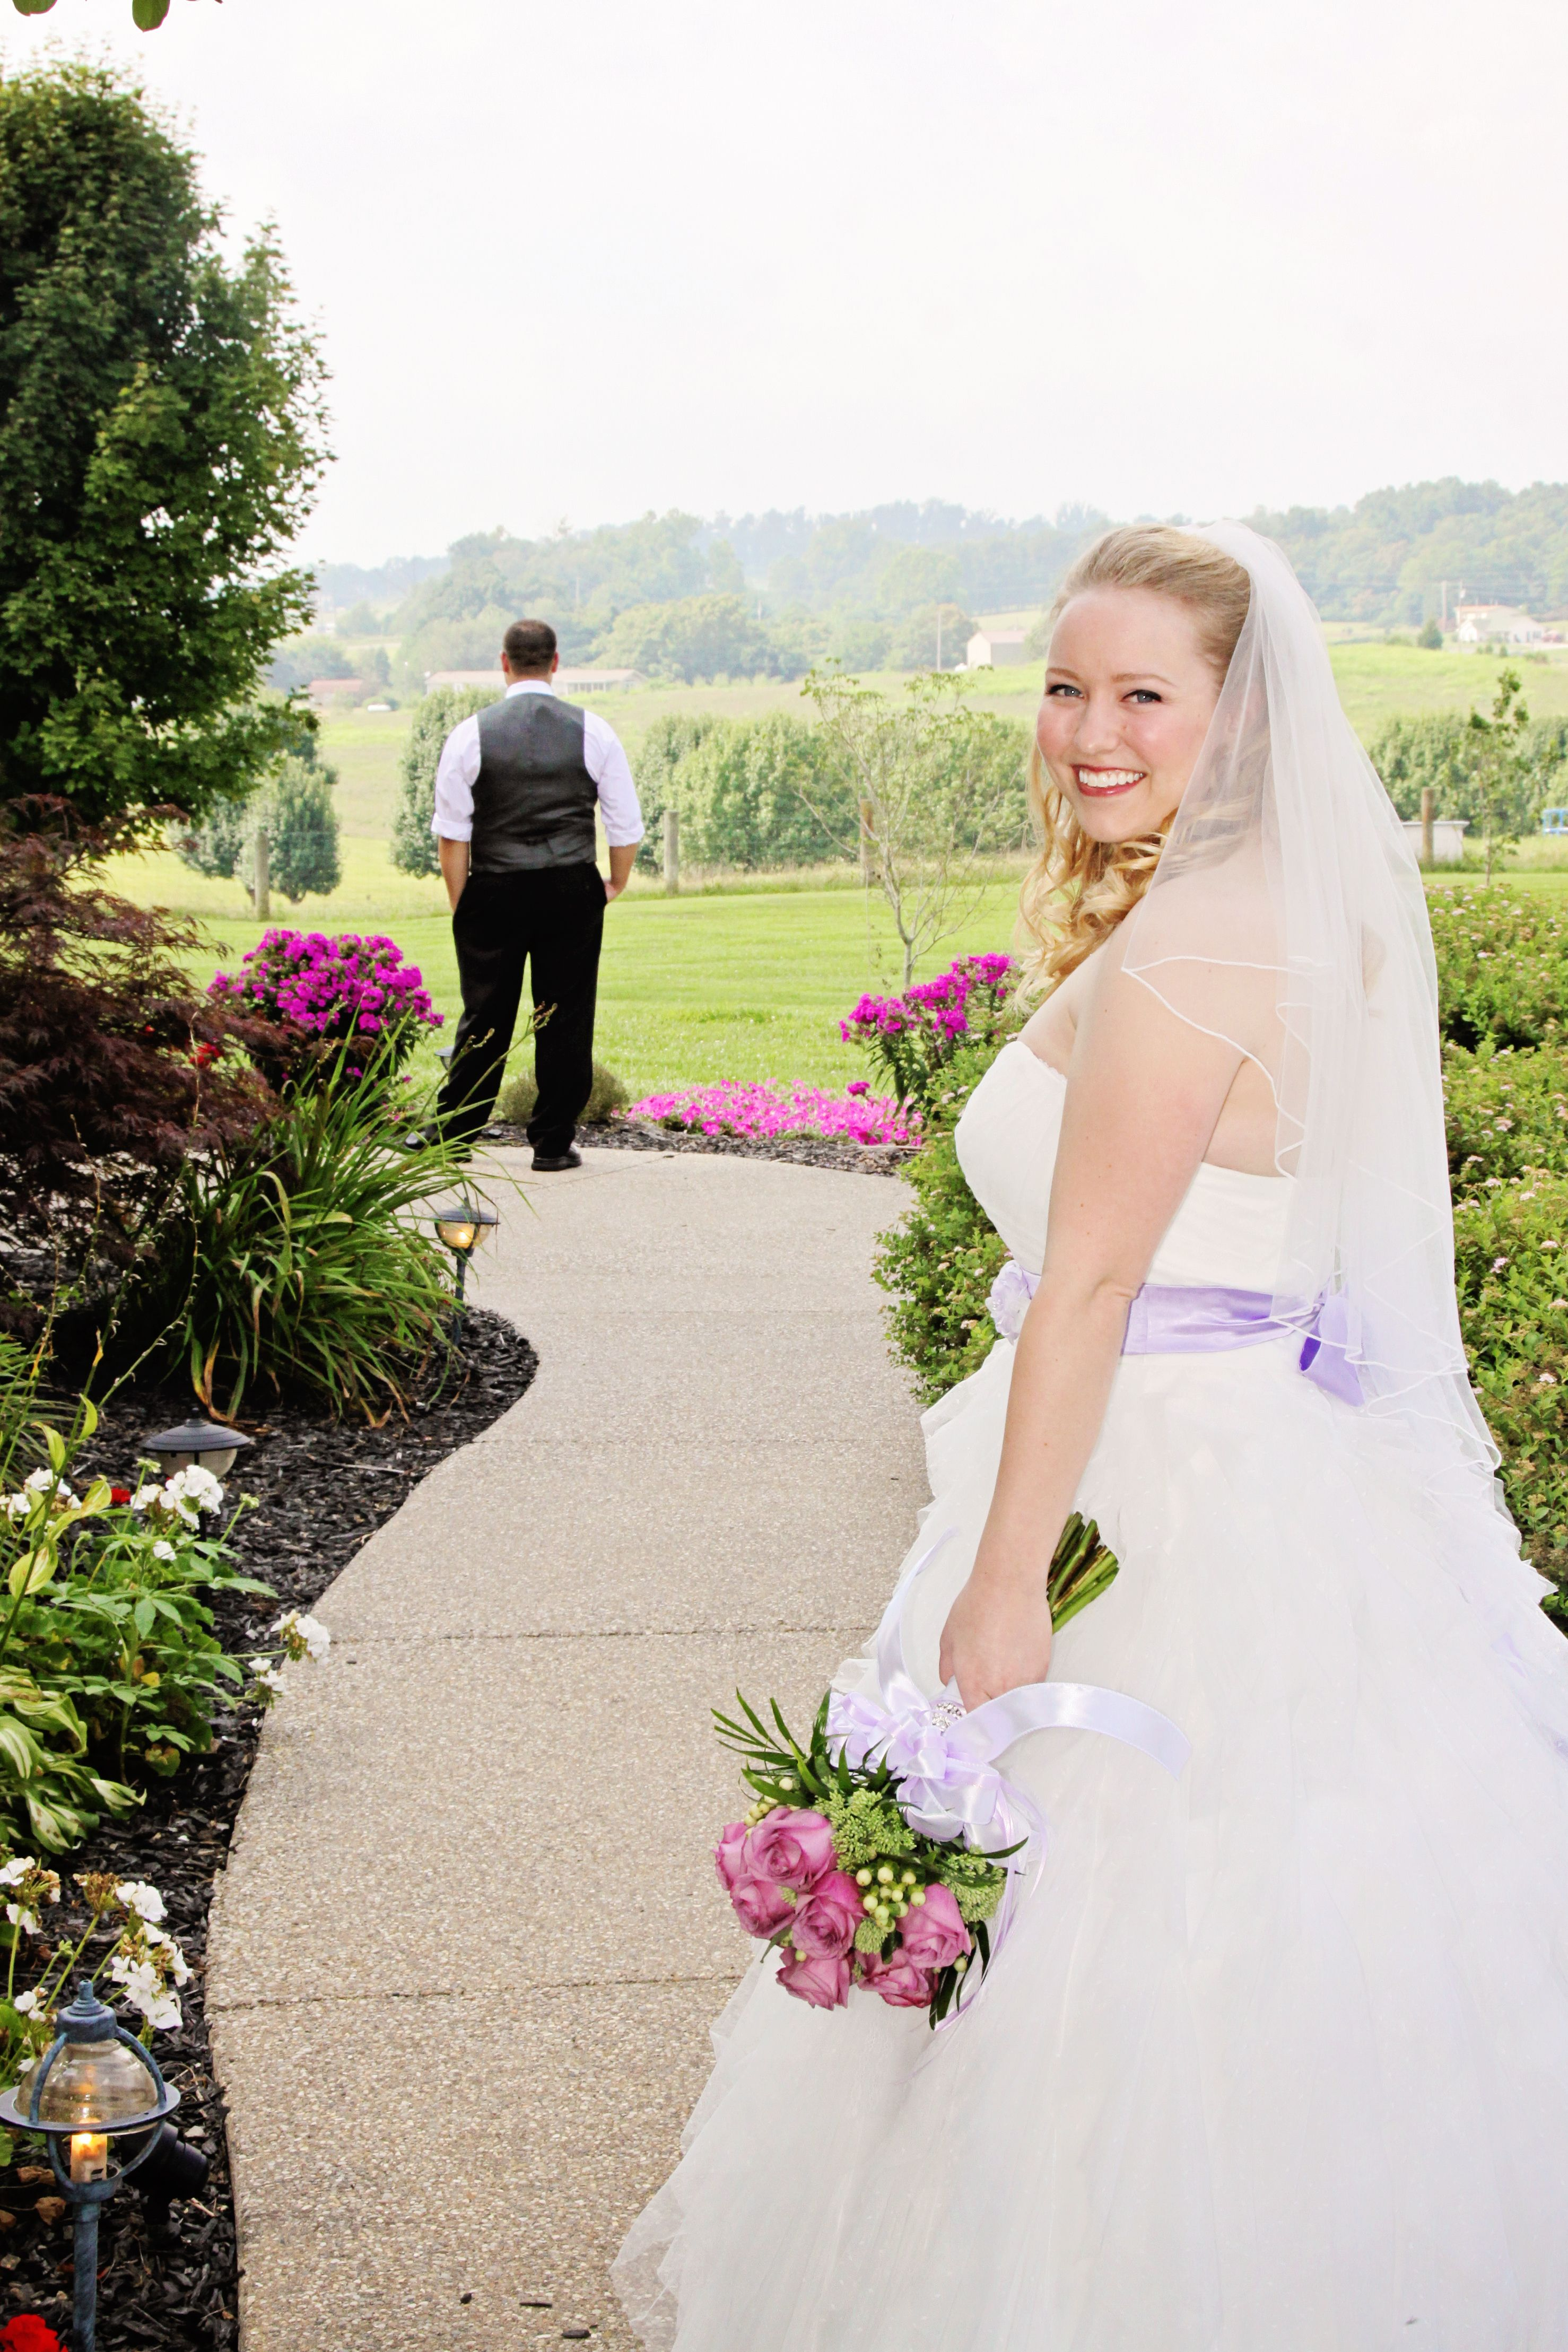 Kentucky wedding chapel elope in kentucky affordable wedding kentucky wedding chapel elope in kentucky affordable wedding packages we take care of all ombrellifo Images